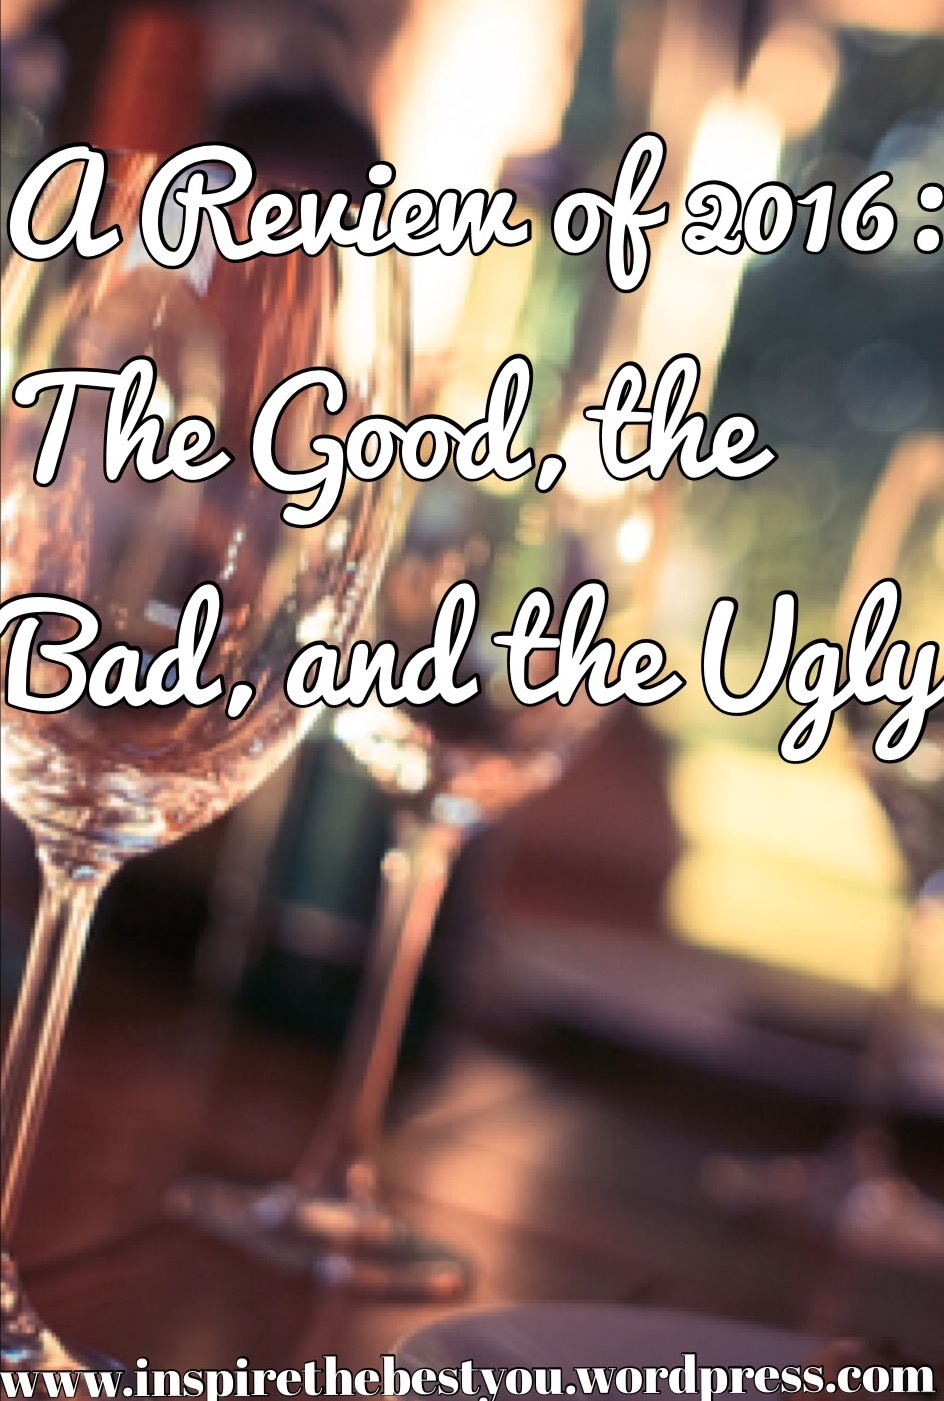 A Review of 2016: The Good, the Bad, and the Ugly